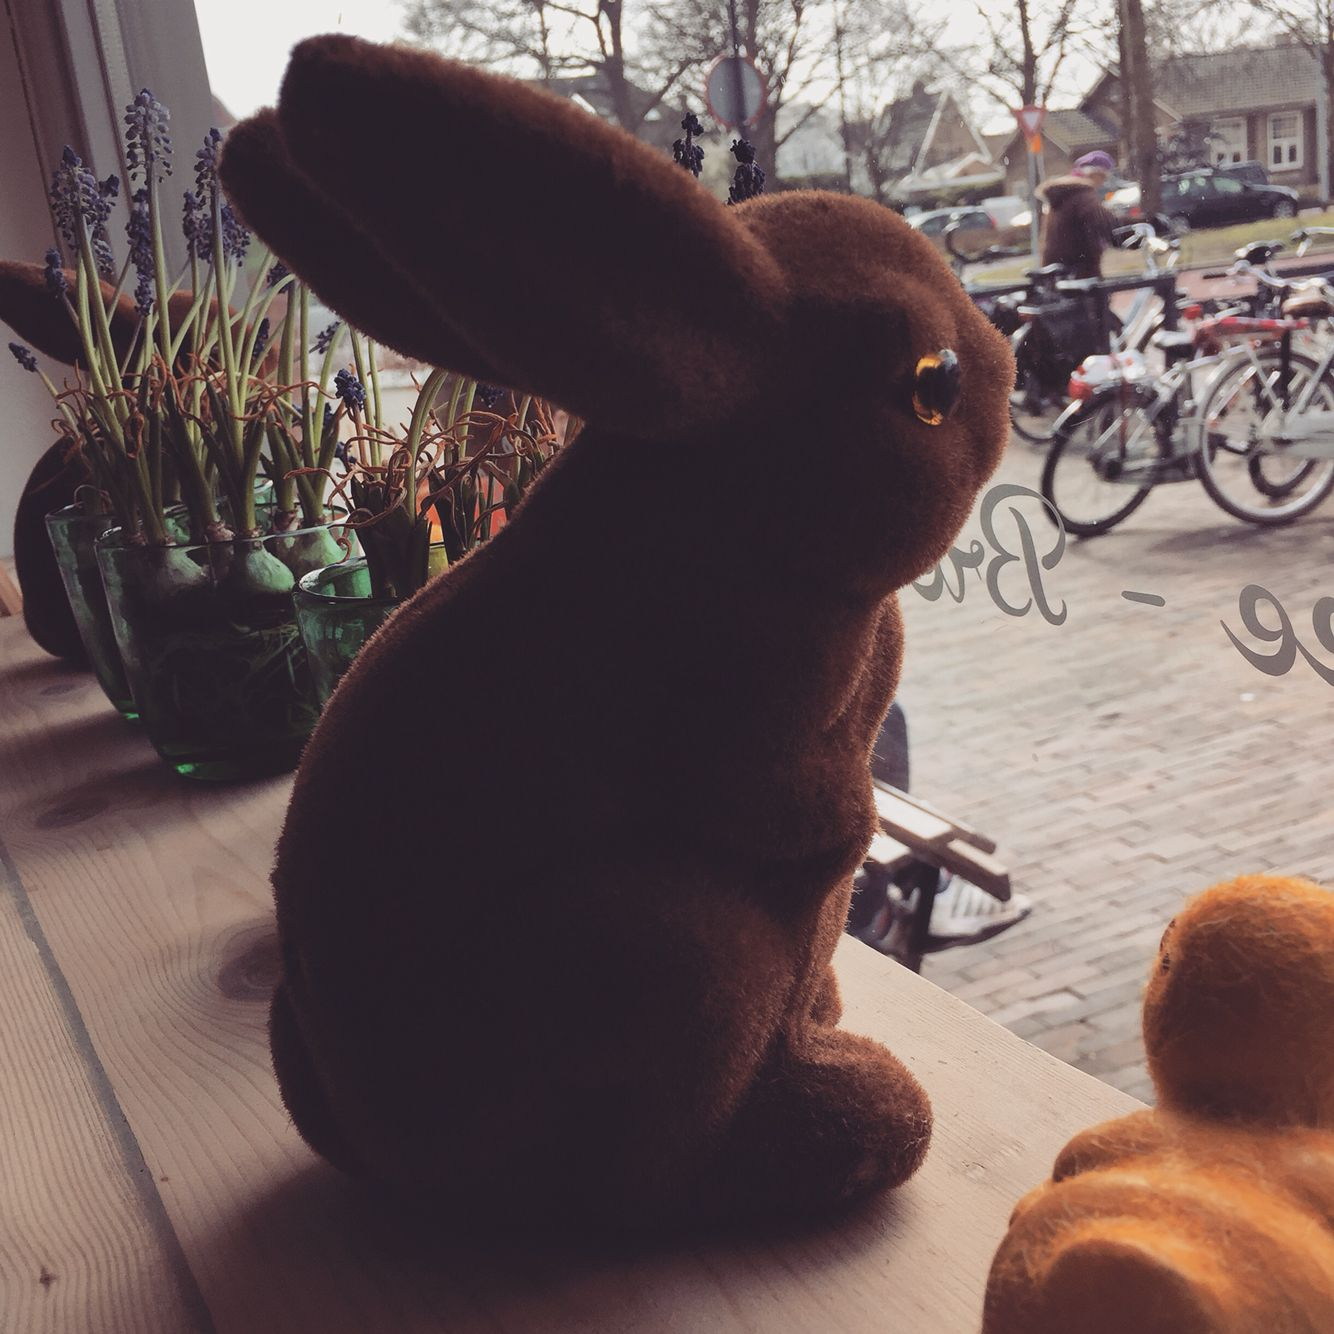 This easter bunny looks like he's longing to go outside #lookssad #easter